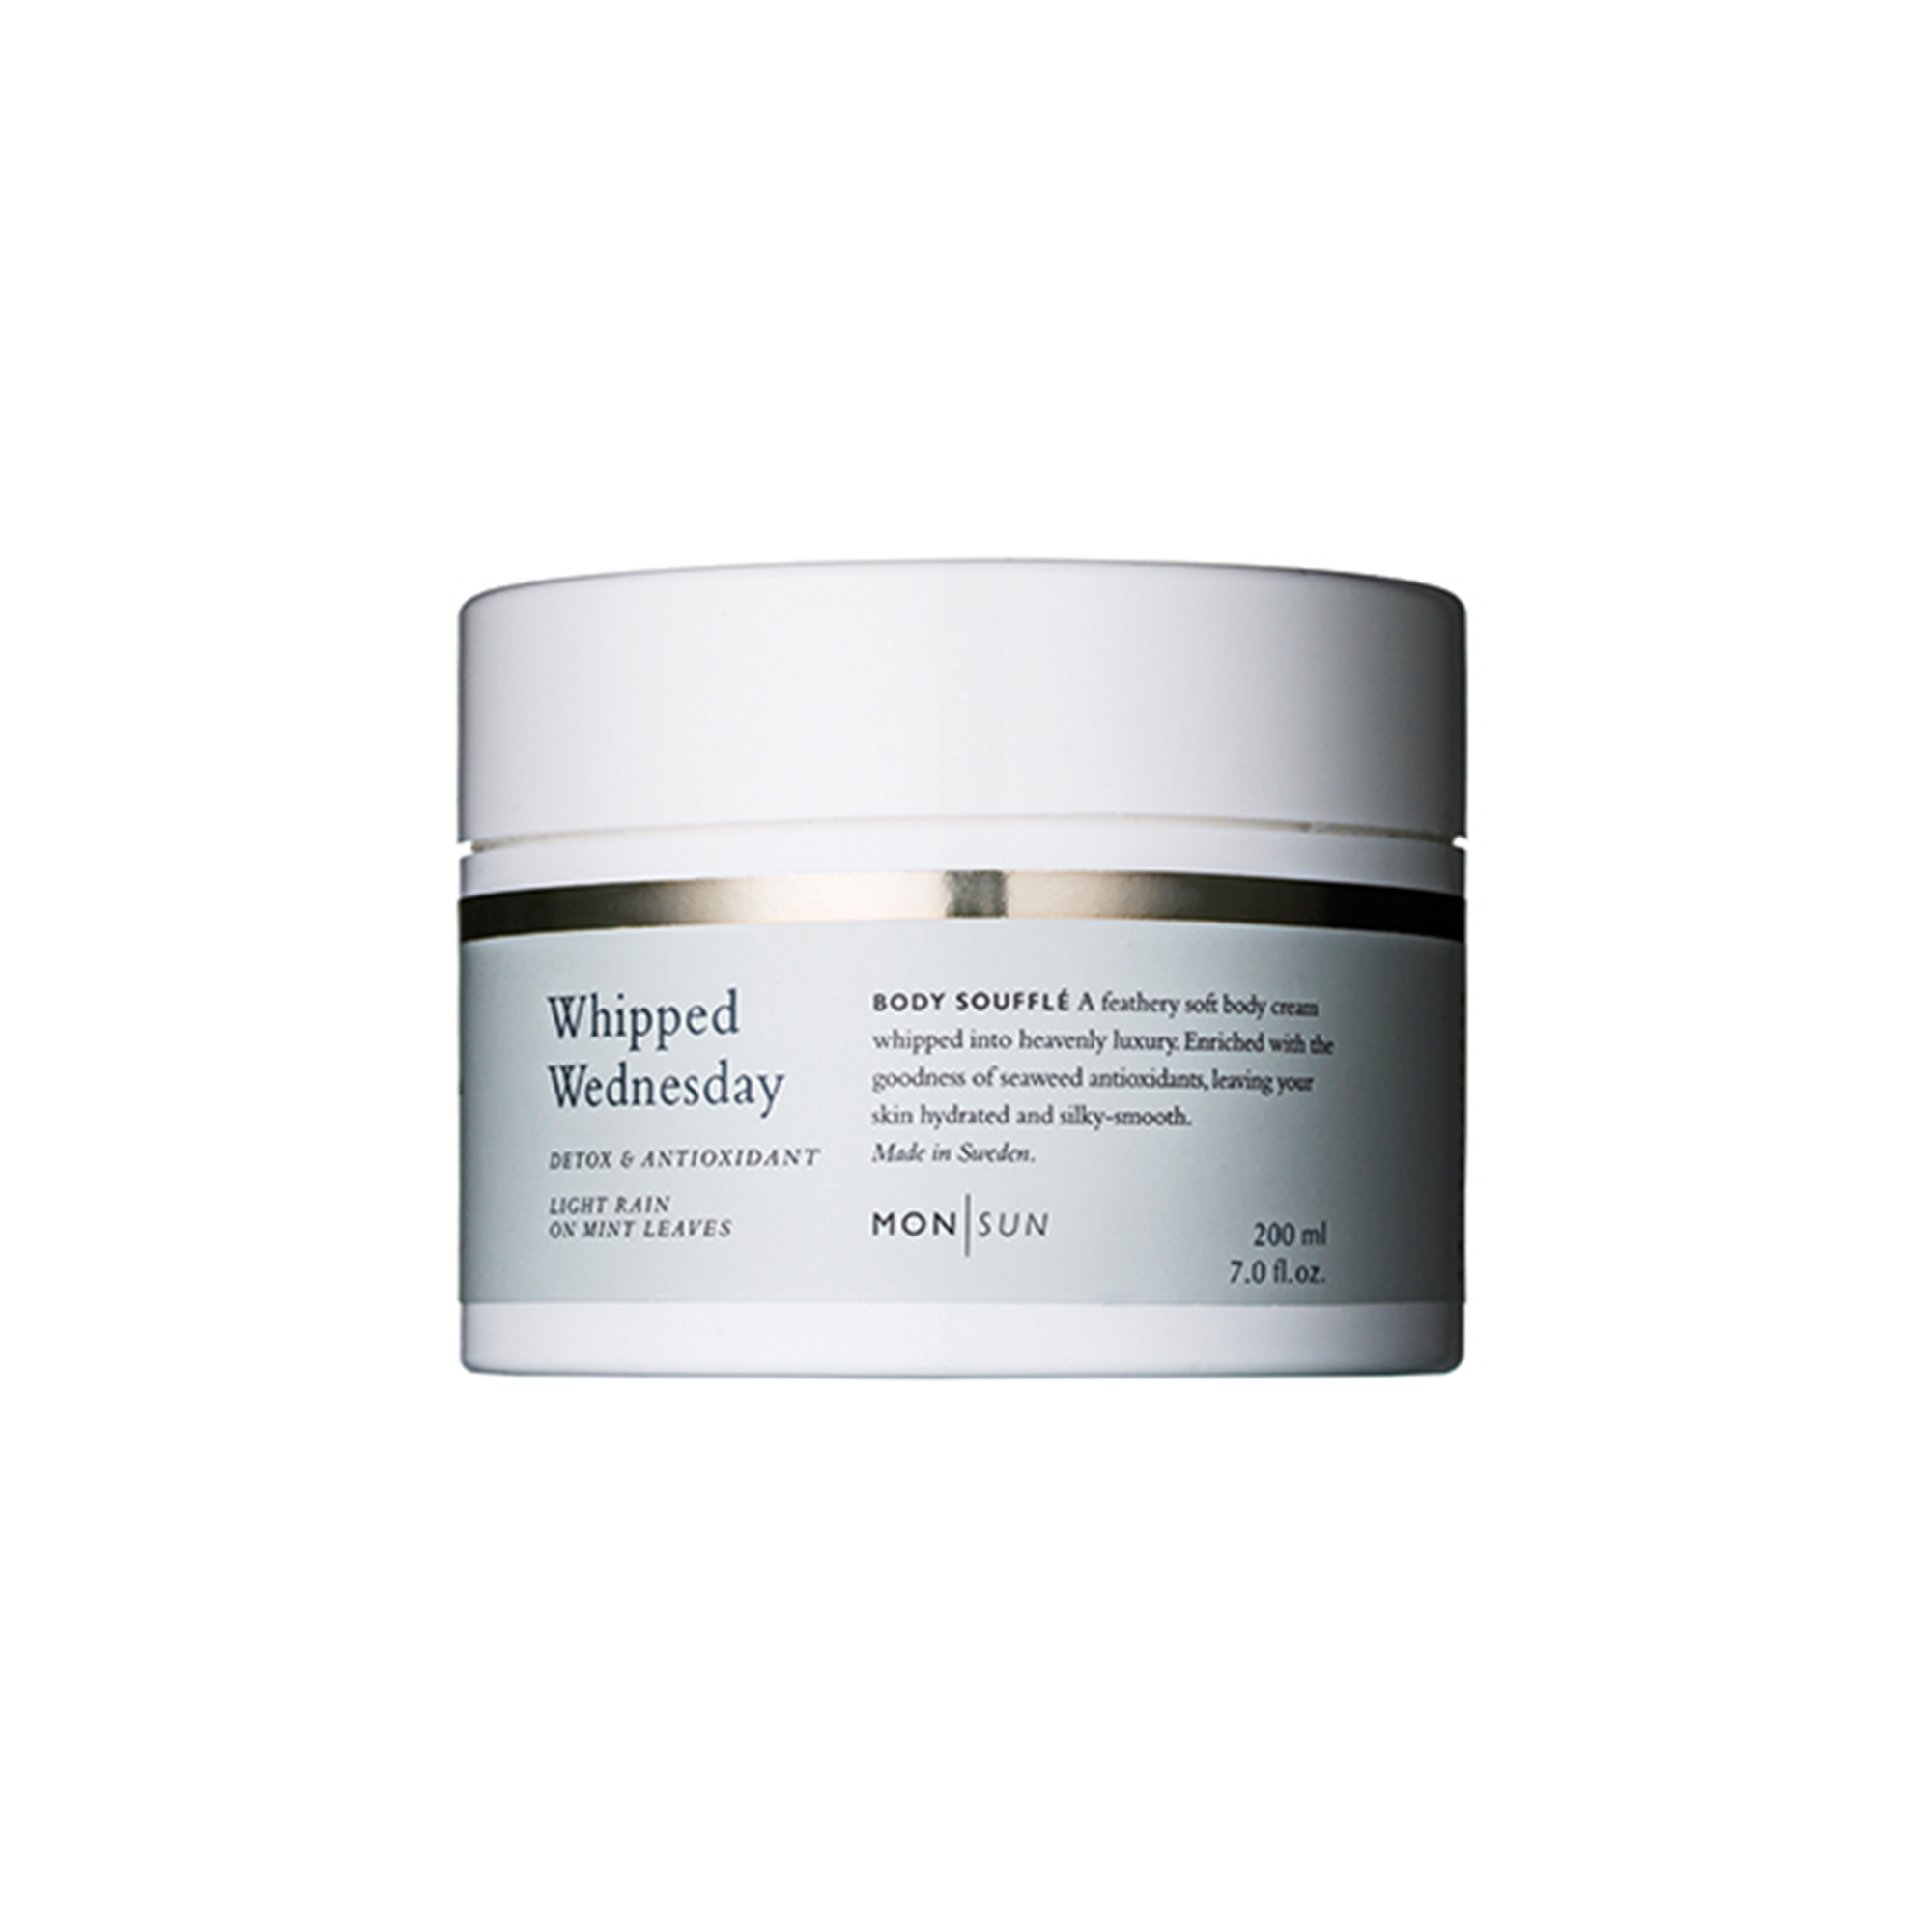 Whipped Wednesday Detox & Antioxidant Body Soufflé 200 ml